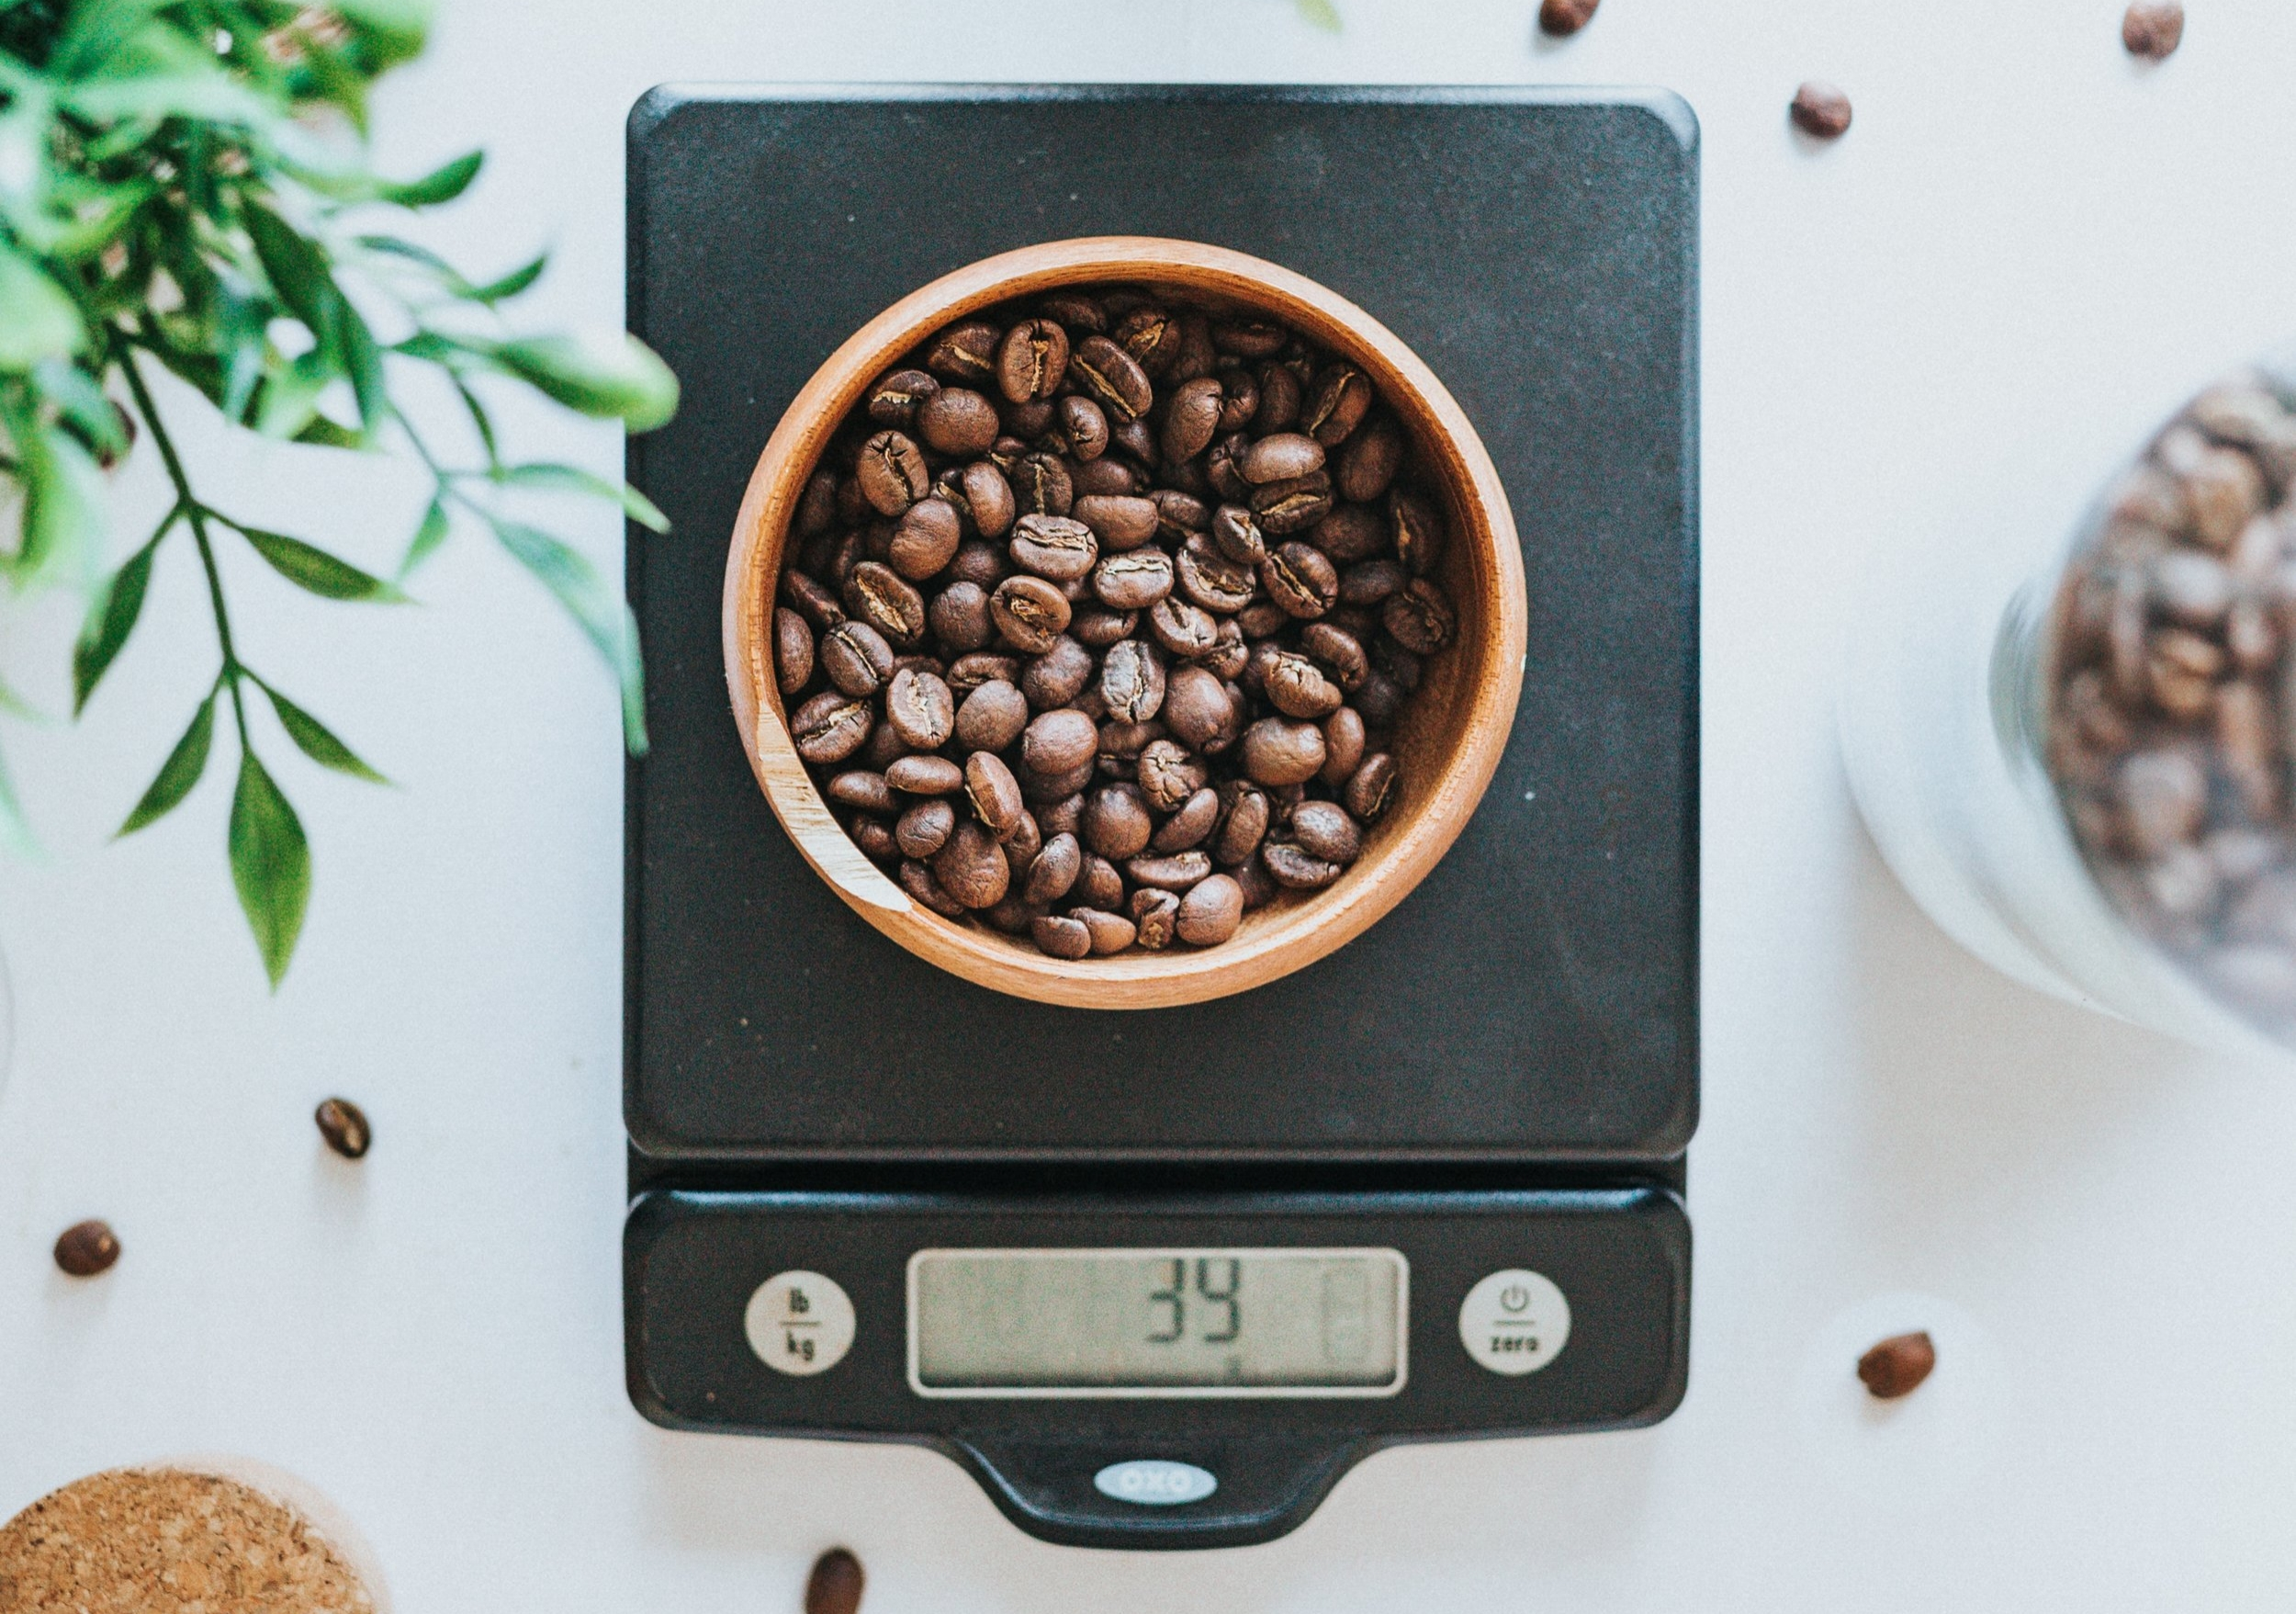 The Best Food Scales For 2021